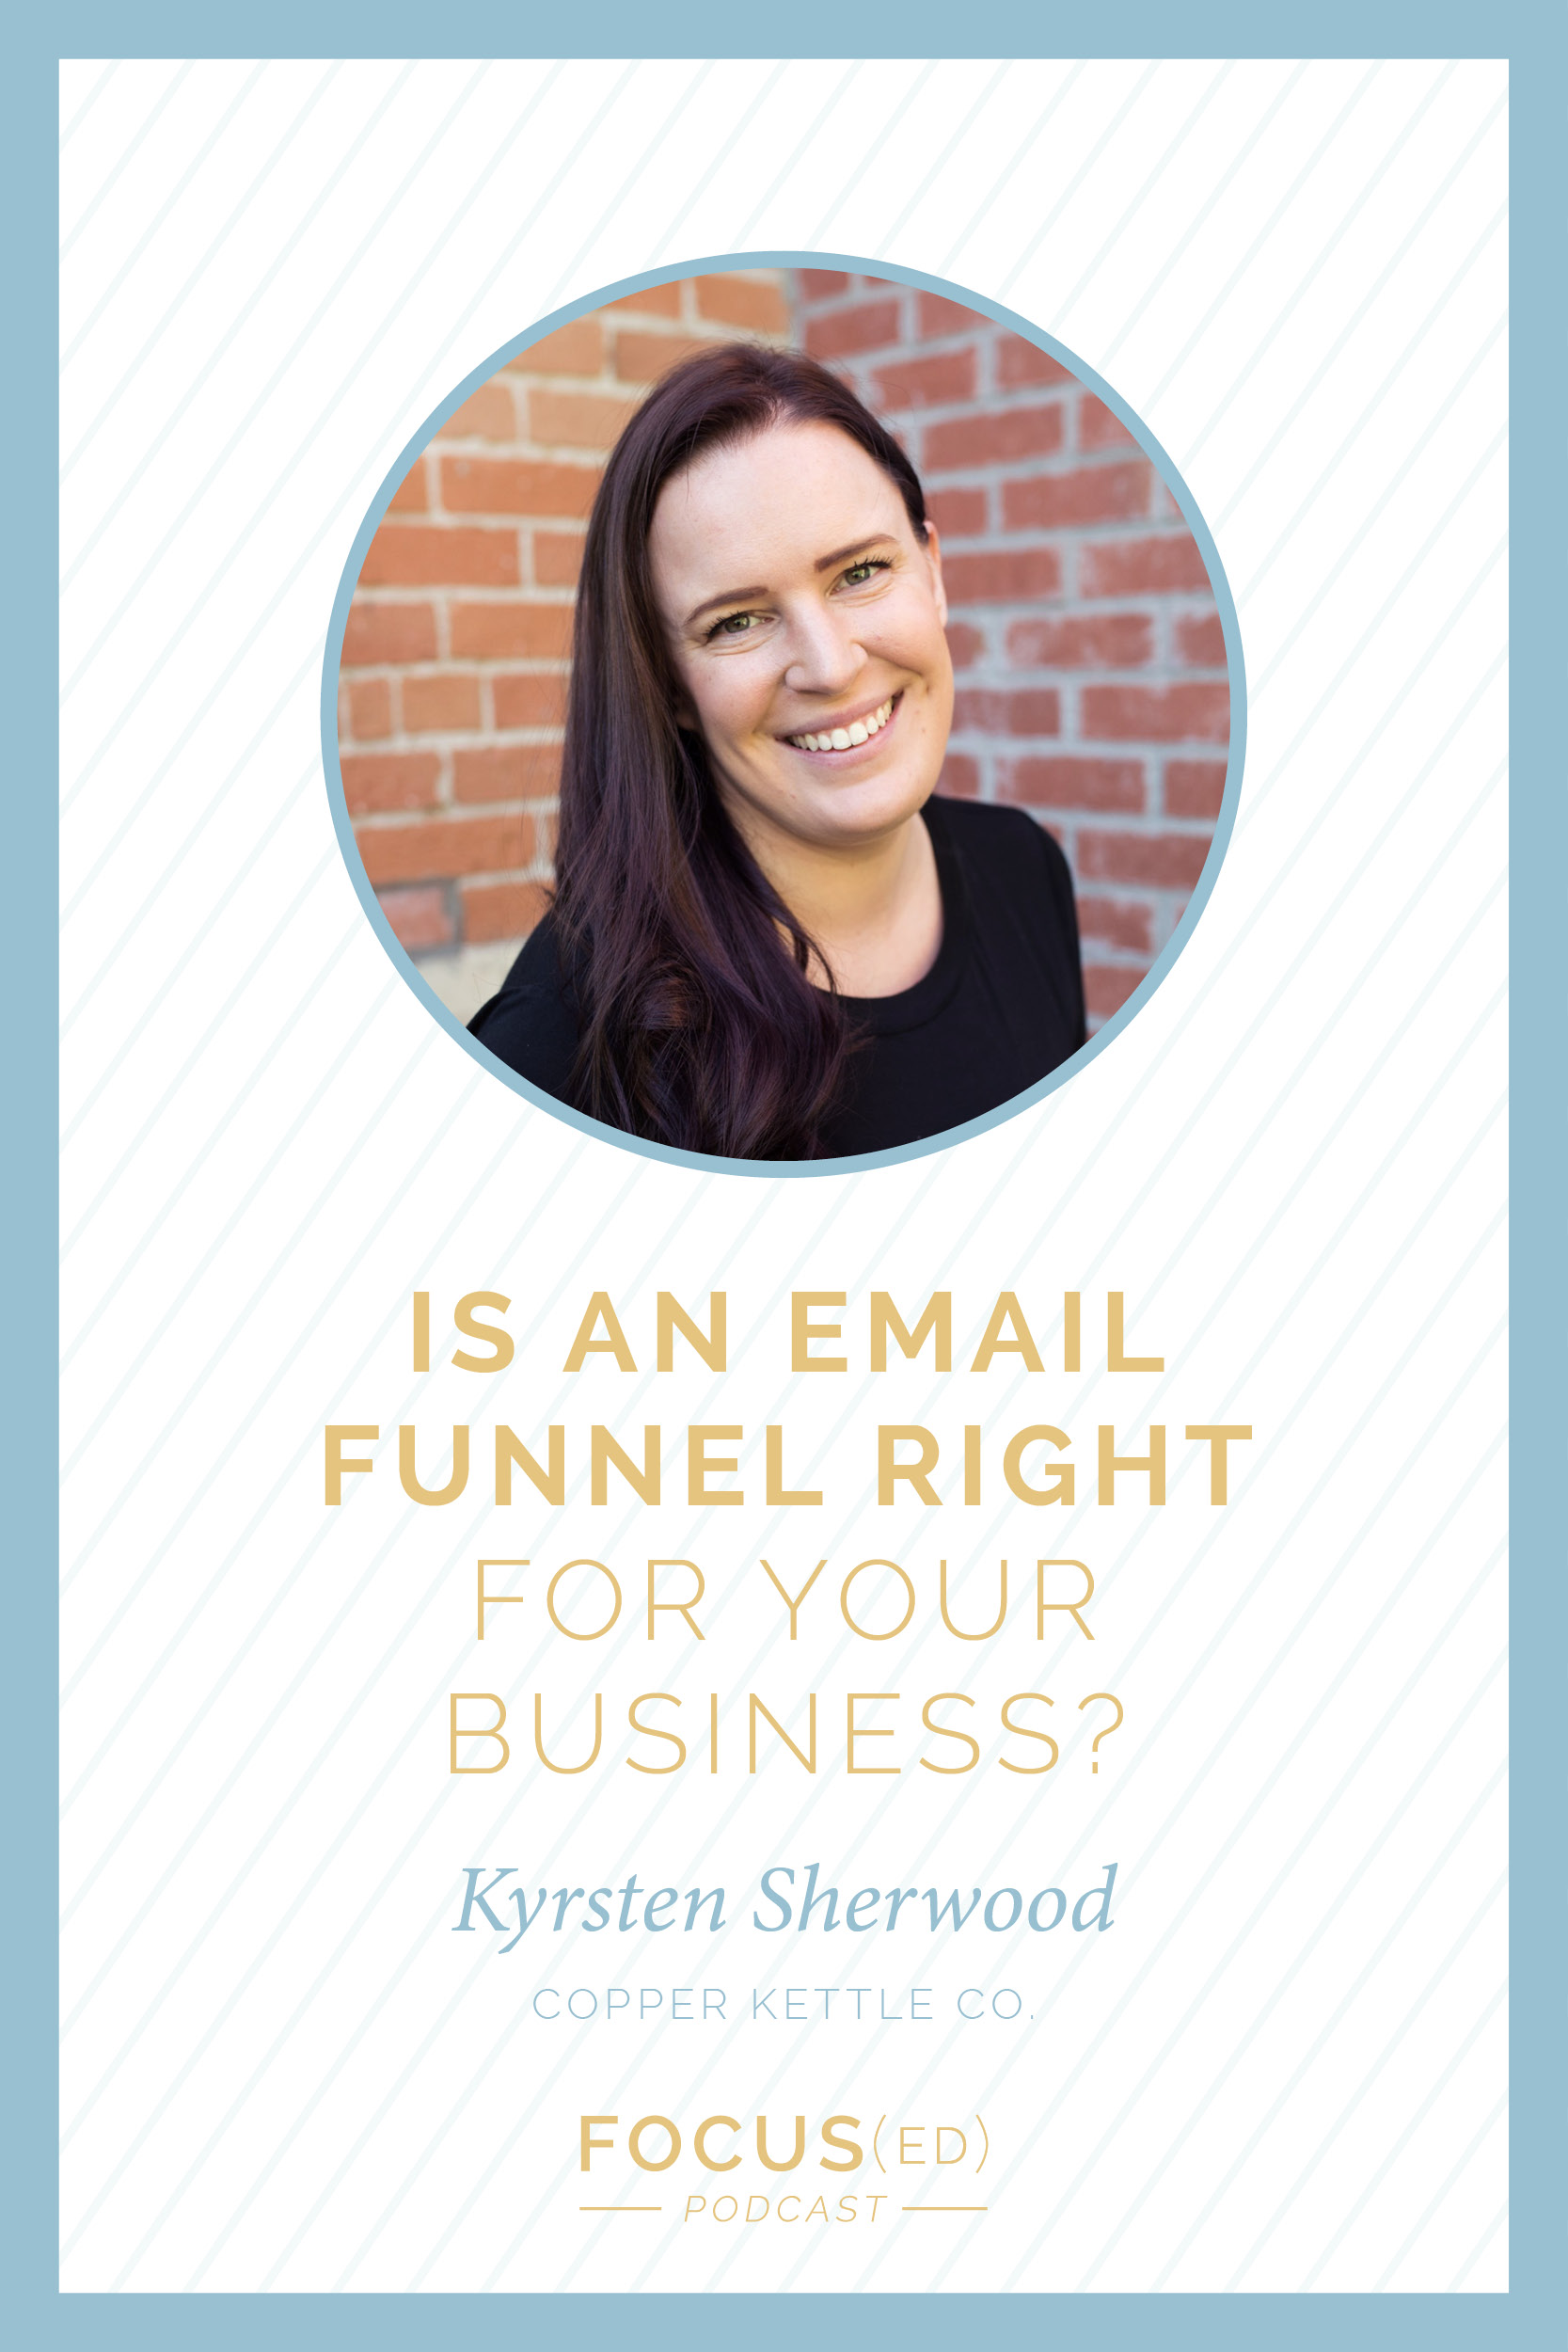 Is an email funnel right for your business? Kyrsten Sherwood from Copper Kettle Co. | Focus(ed) Podcast 073